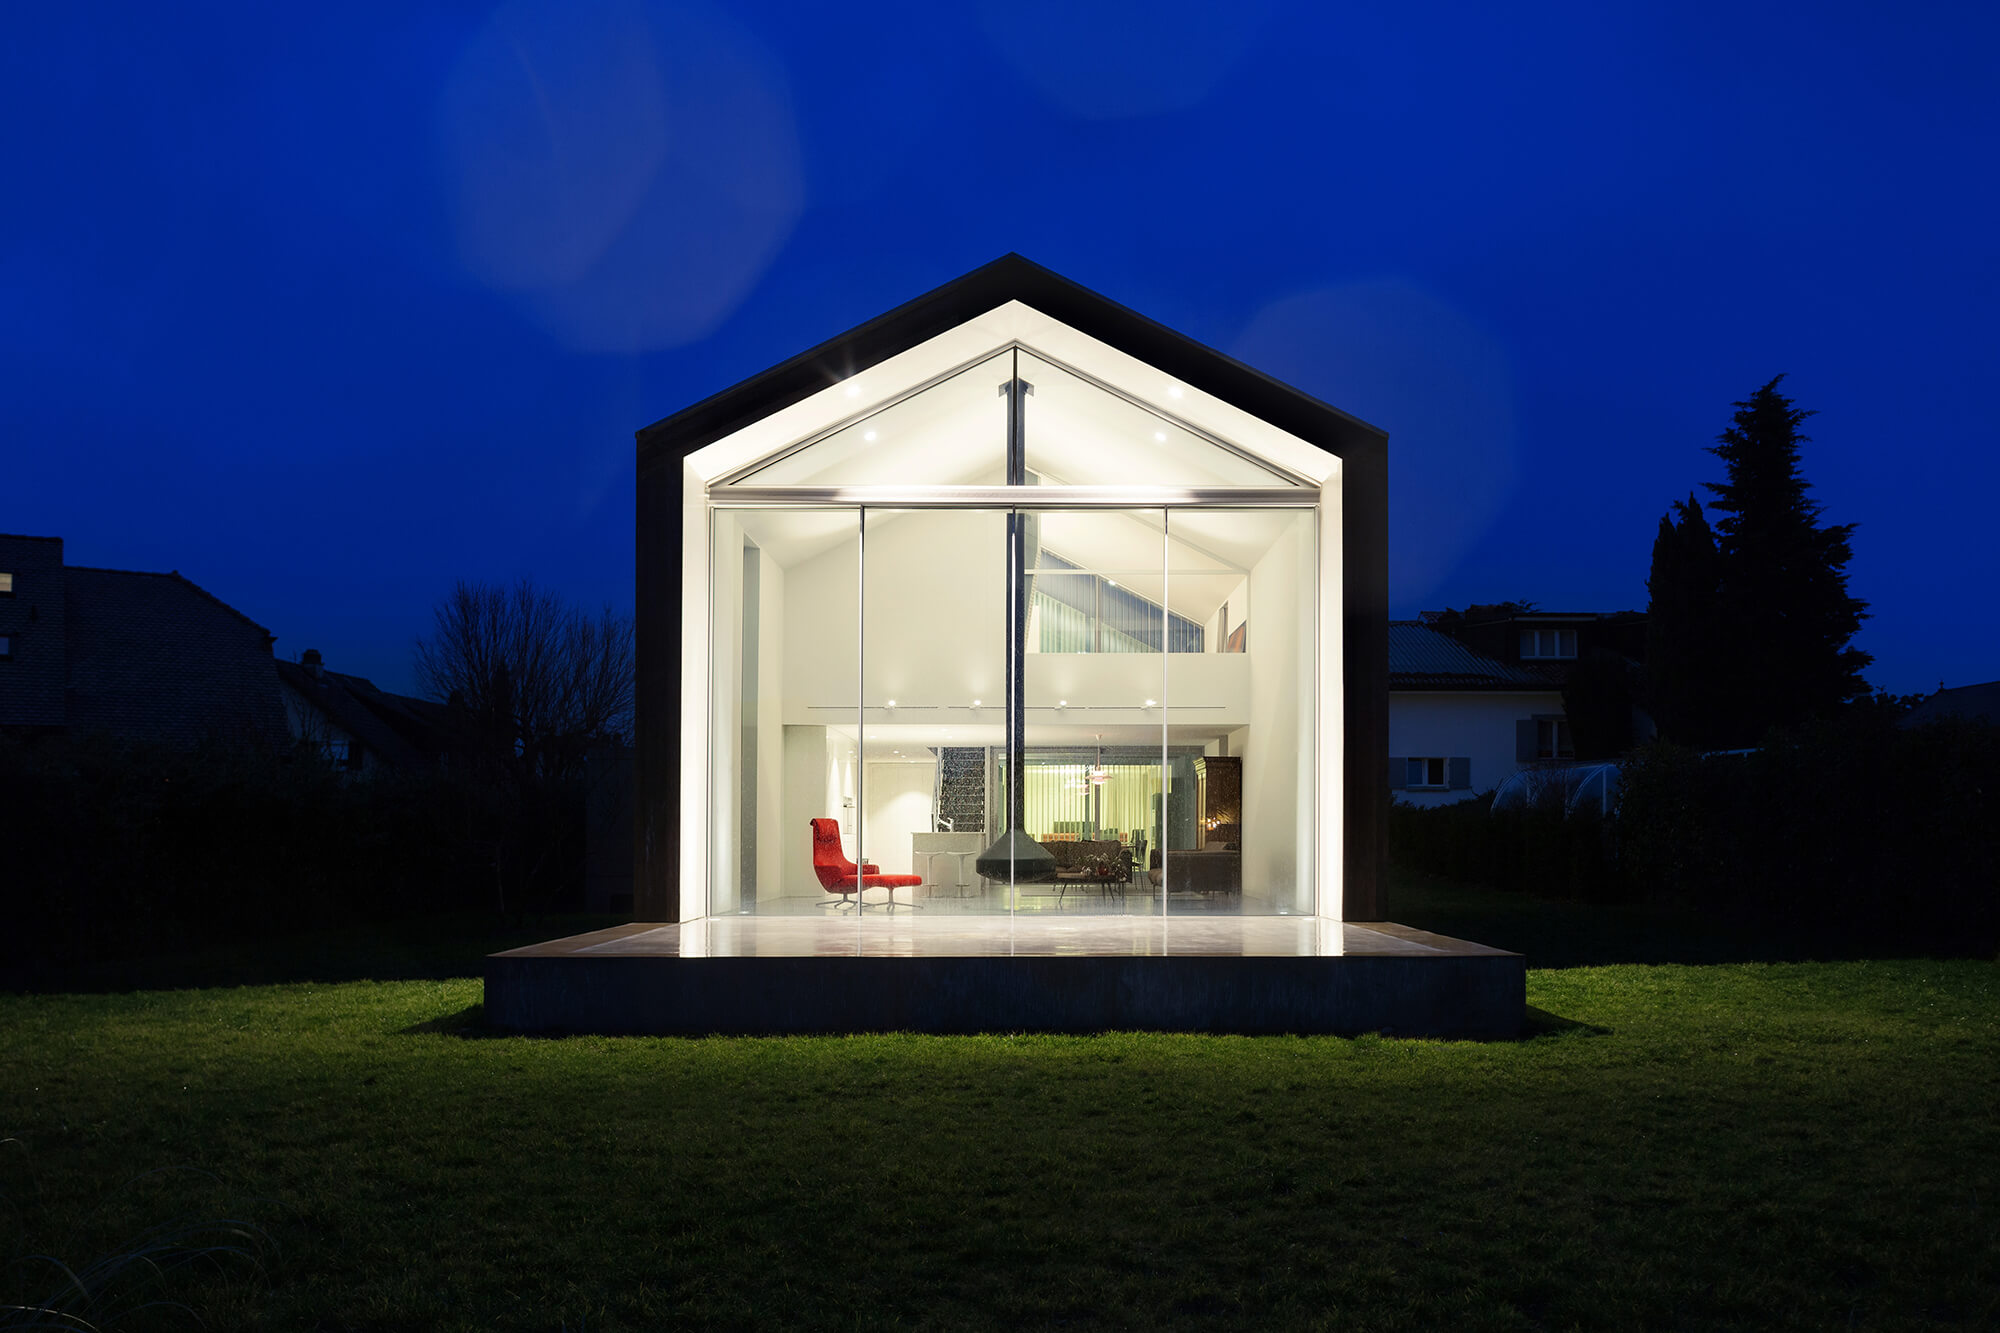 An architecturally designed home with warm interior lights bright against the deep blue evening sky.